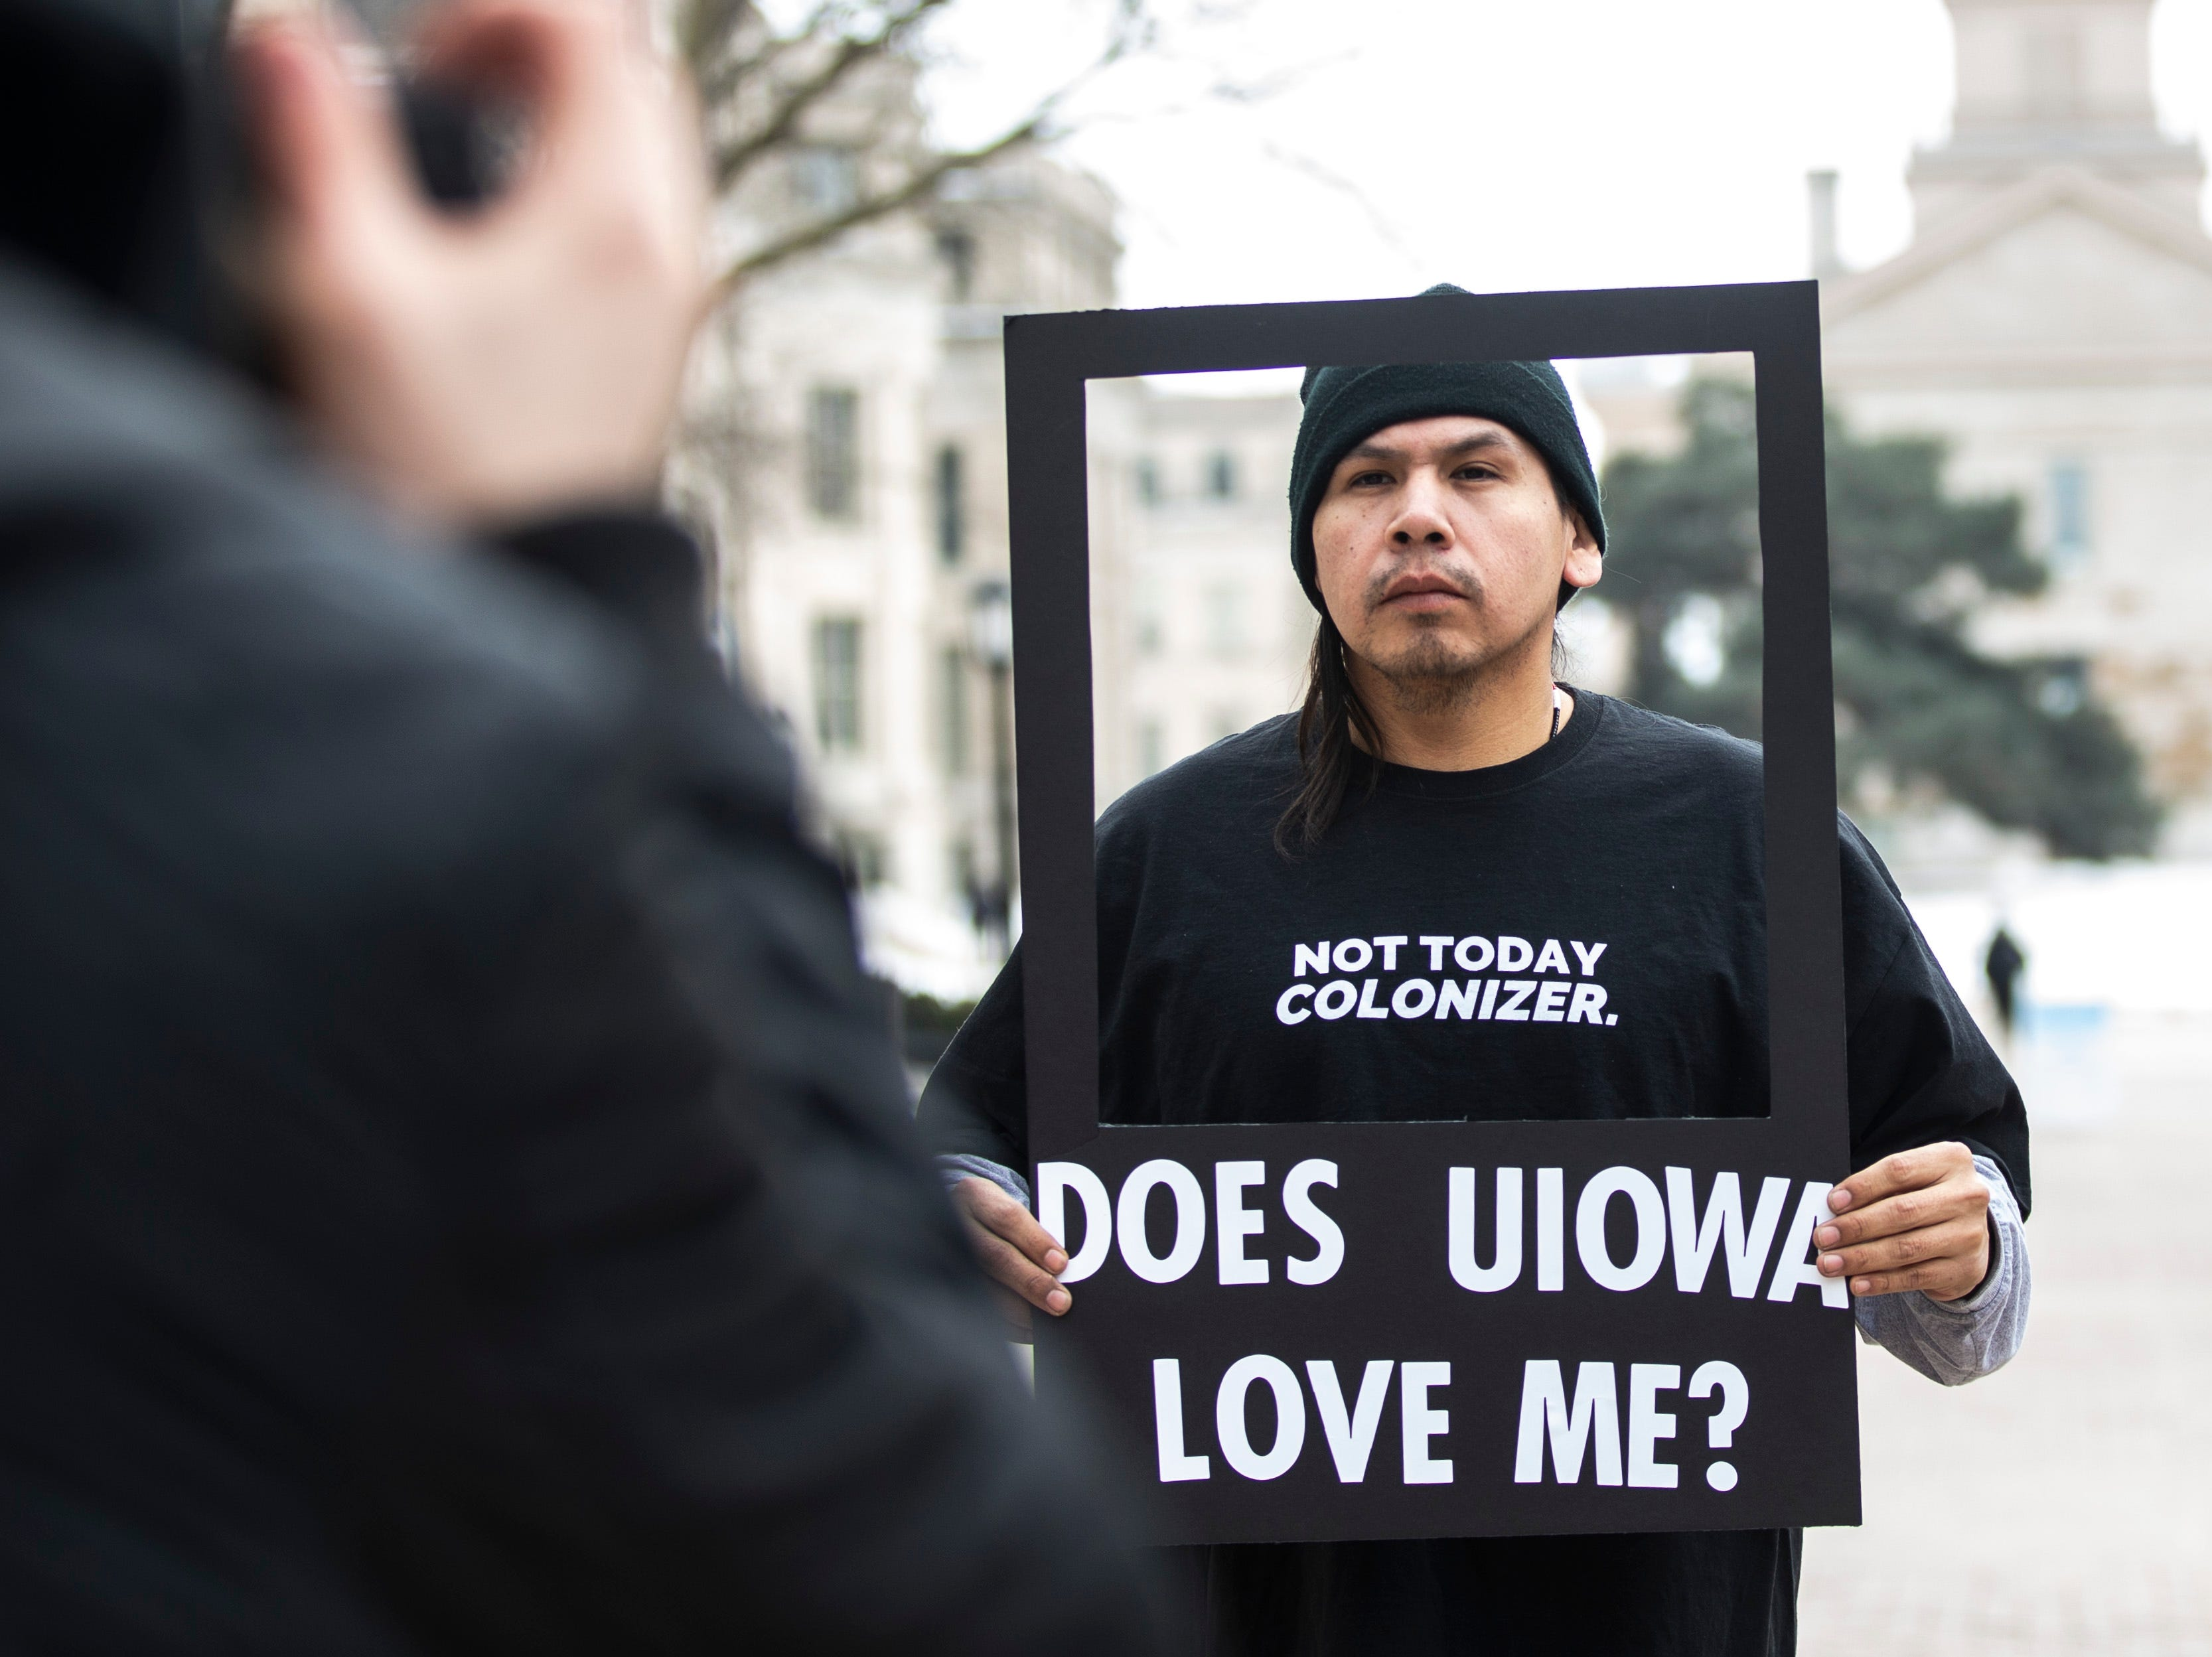 """University of Iowa senior Dawson Davenport holds a frame while wearing a shirt reading, """"Not today colonizer."""" as he has his photo taken during a """"speak out"""" event organized by the """"#DoesUIowaLoveMe"""" group on Thursday, Feb. 28, 2019, along the T. Anne Cleary Walkway on the University of Iowa campus in Iowa City, Iowa."""